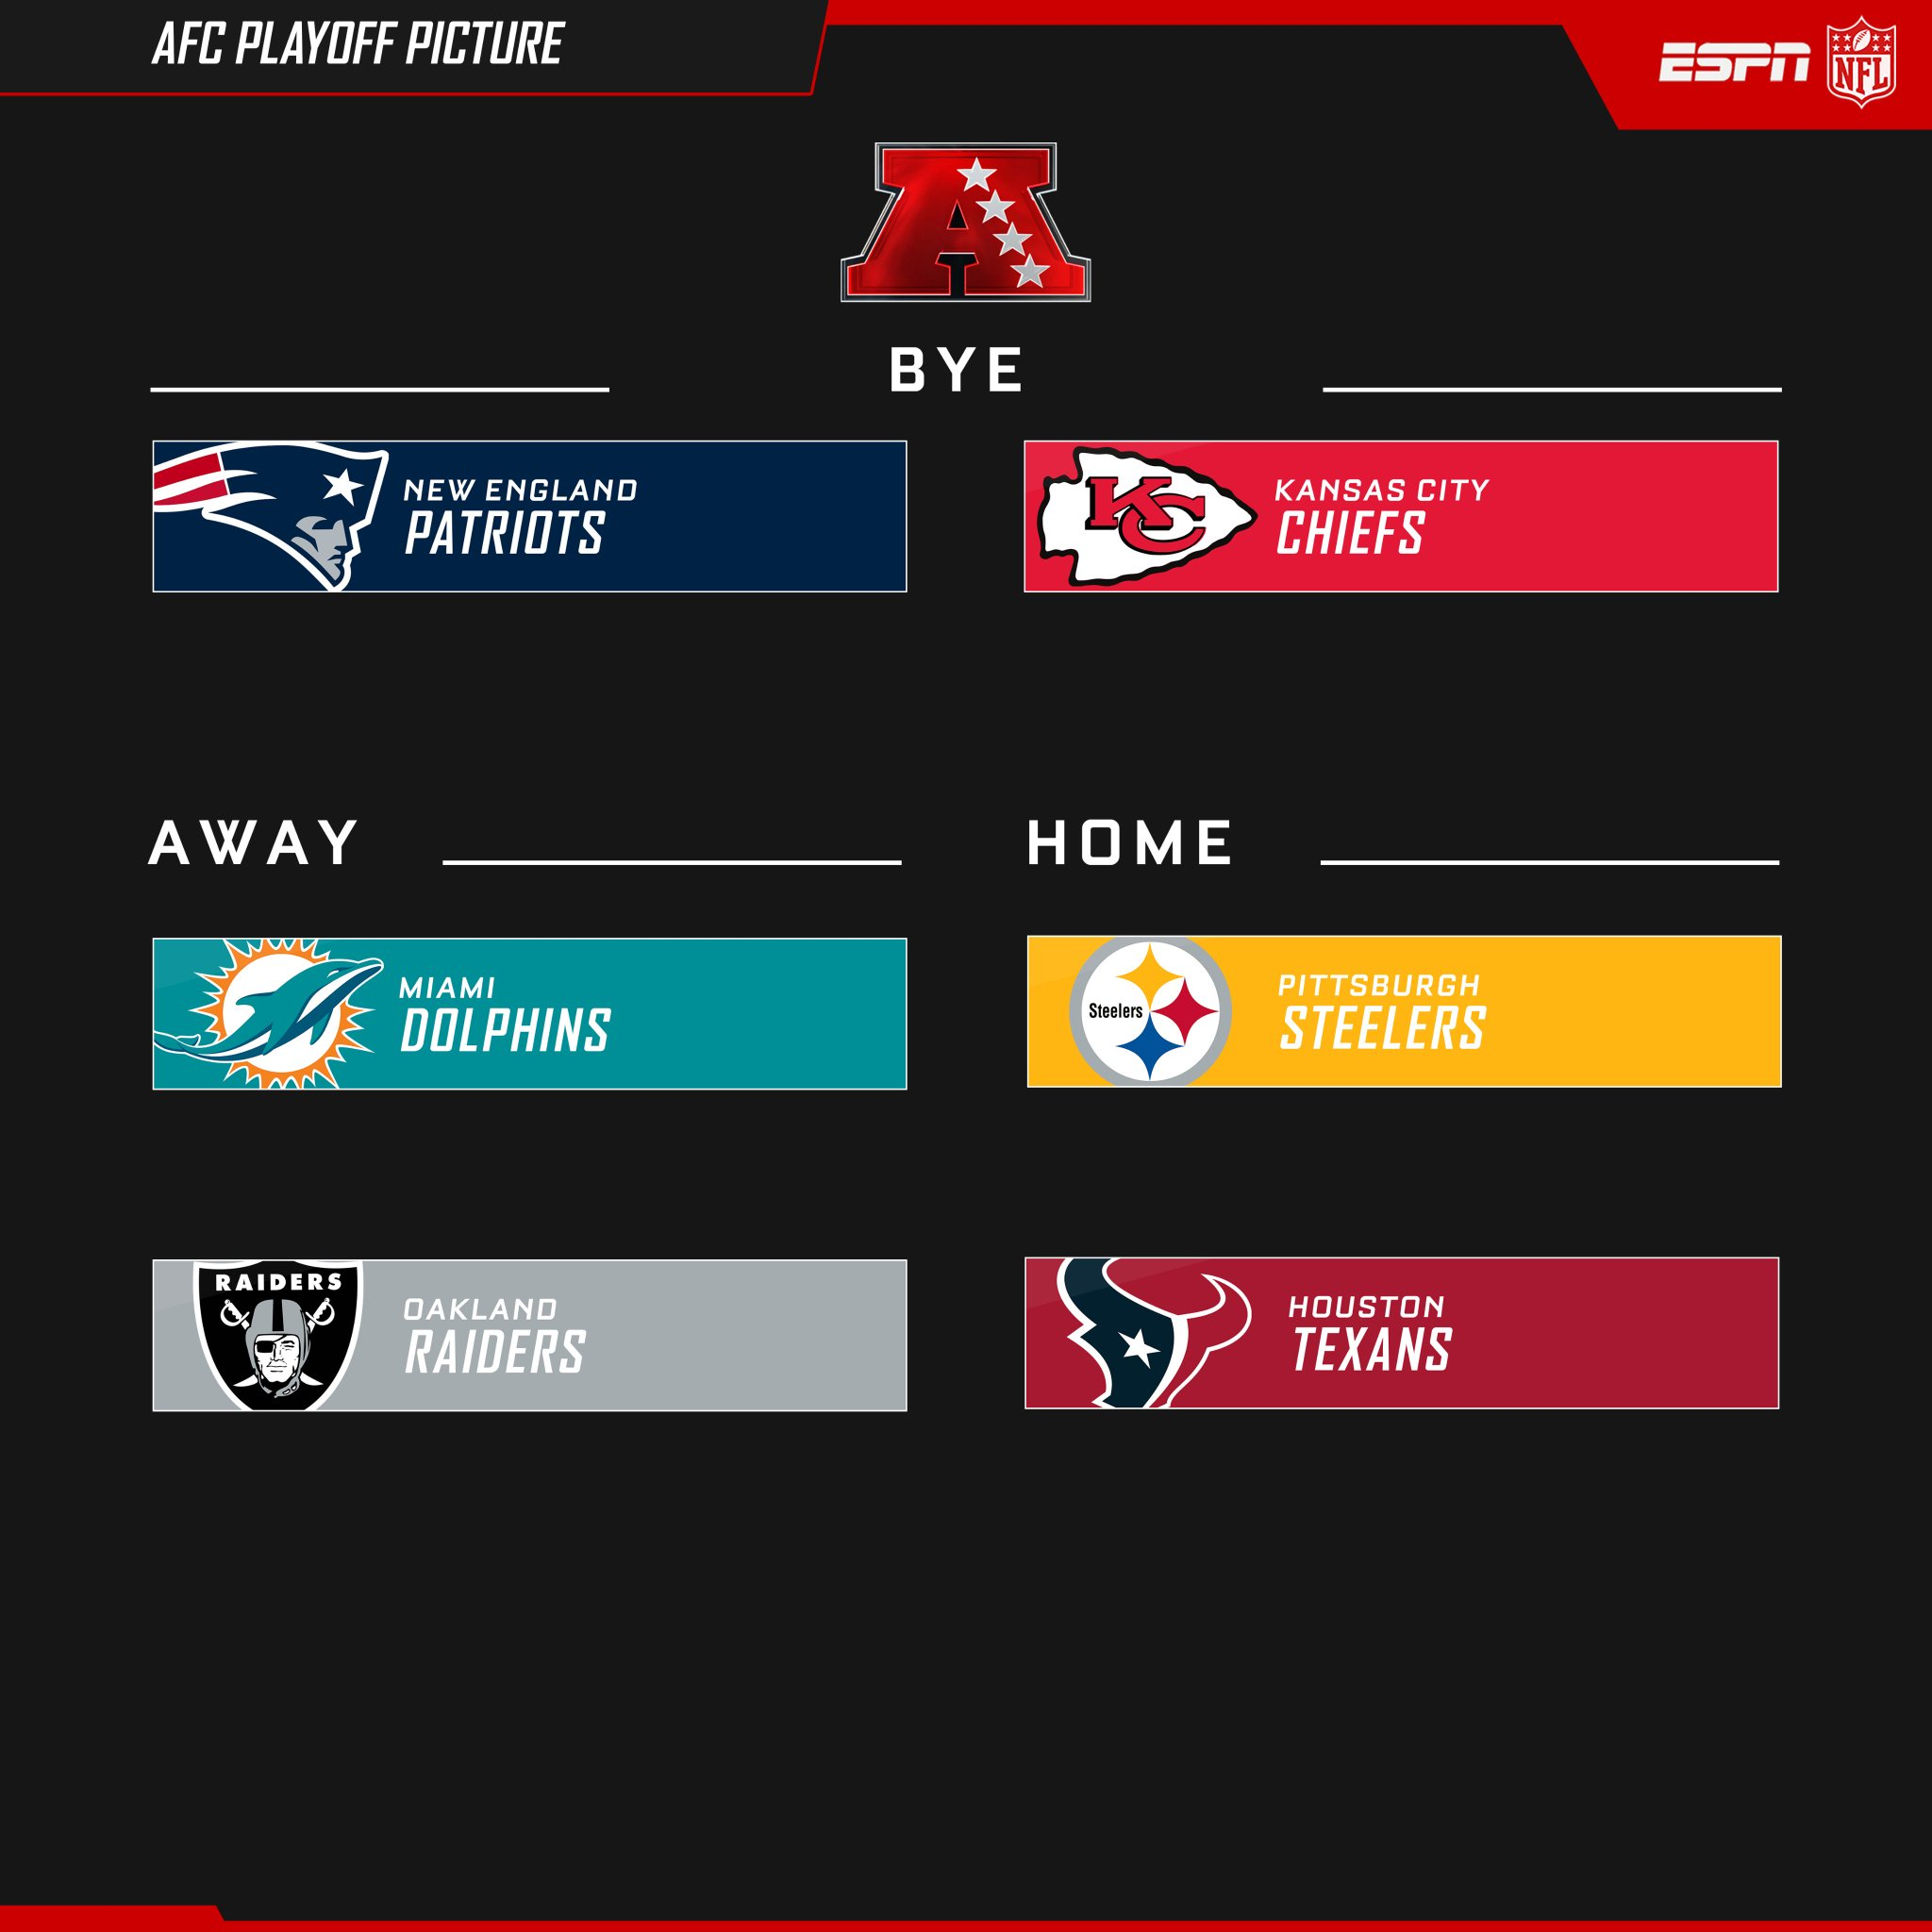 "NFL on ESPN on Twitter: ""AFC Playoff Picture https://t.co ..."